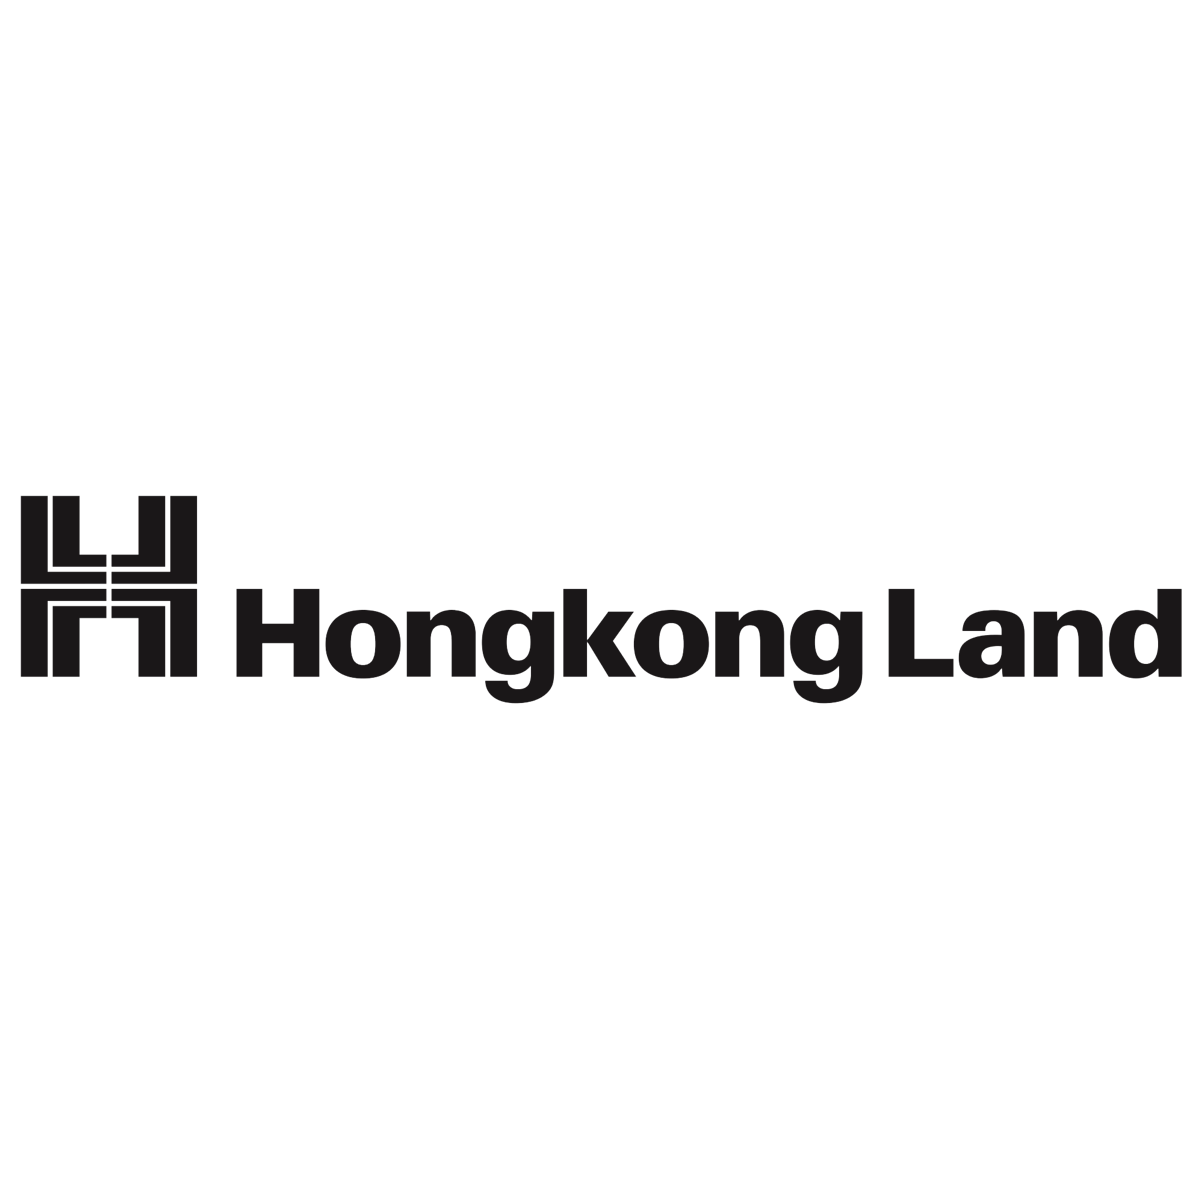 Hongkong Land (HKL SP) - DBS Vickers 2017-11-10: In Good Shape